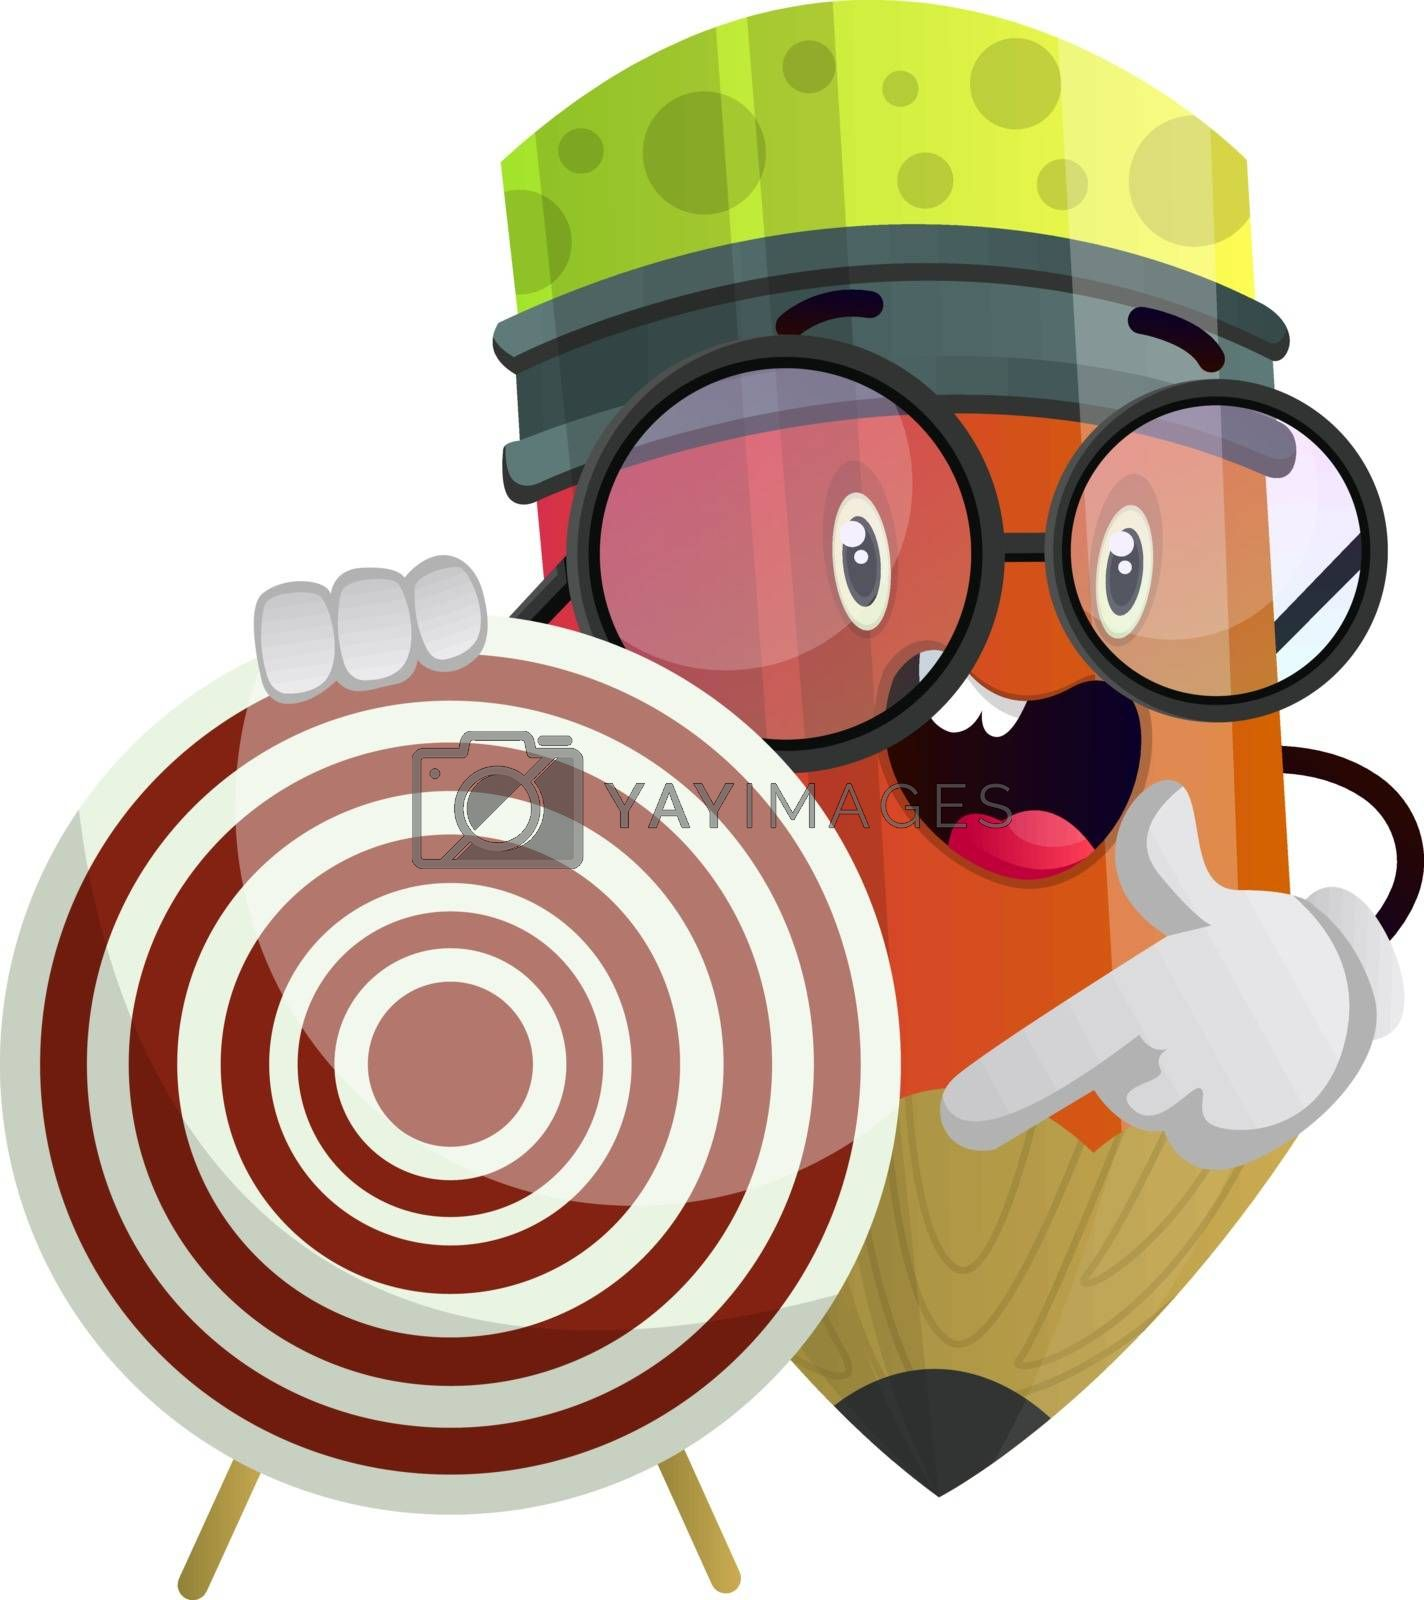 Royalty free image of Ped pencil holding dartboard that is red and white colored illus by Morphart